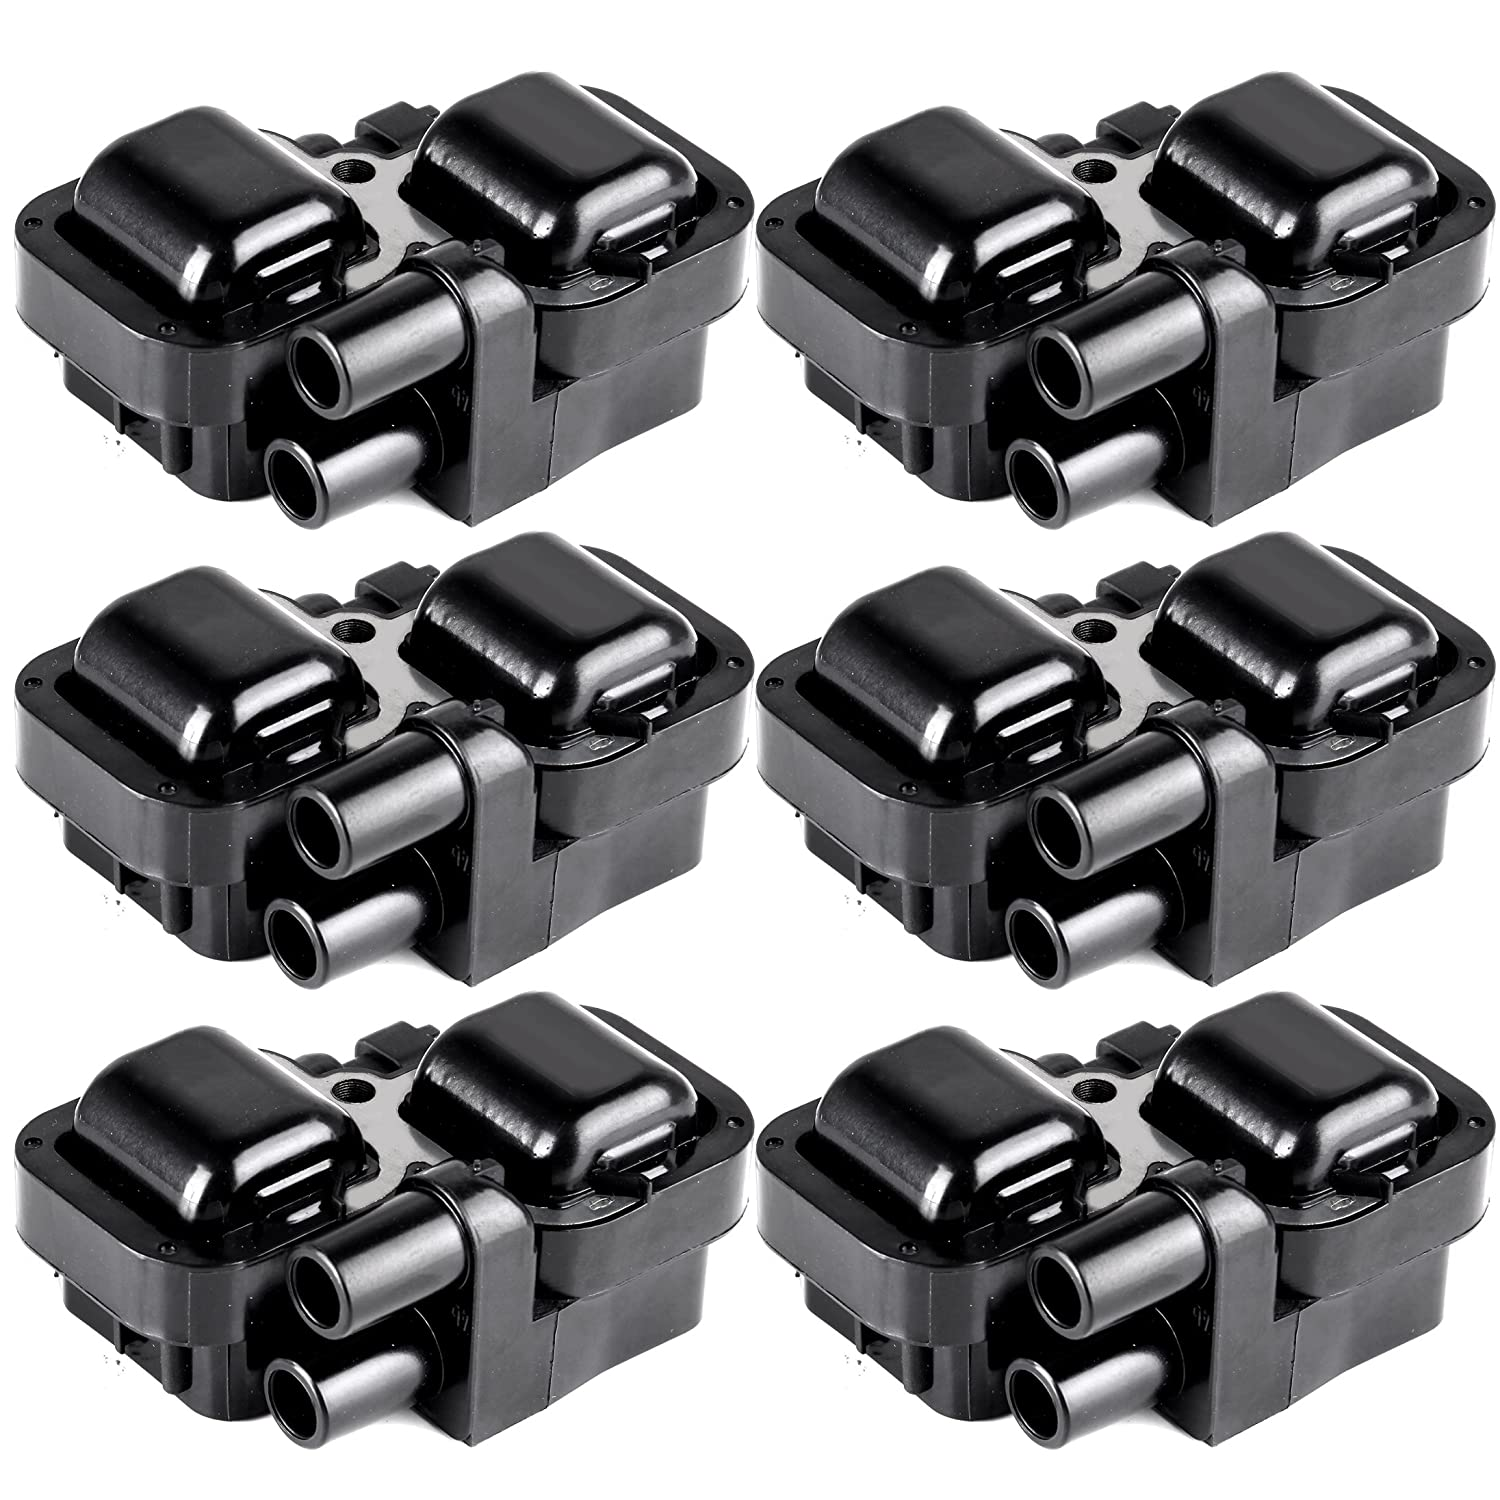 ECCPP Ignition Coils Pack of 6 Compatible with Mercedes-Benz 1997-2011 Replacement for UF-359 C1444 C1361